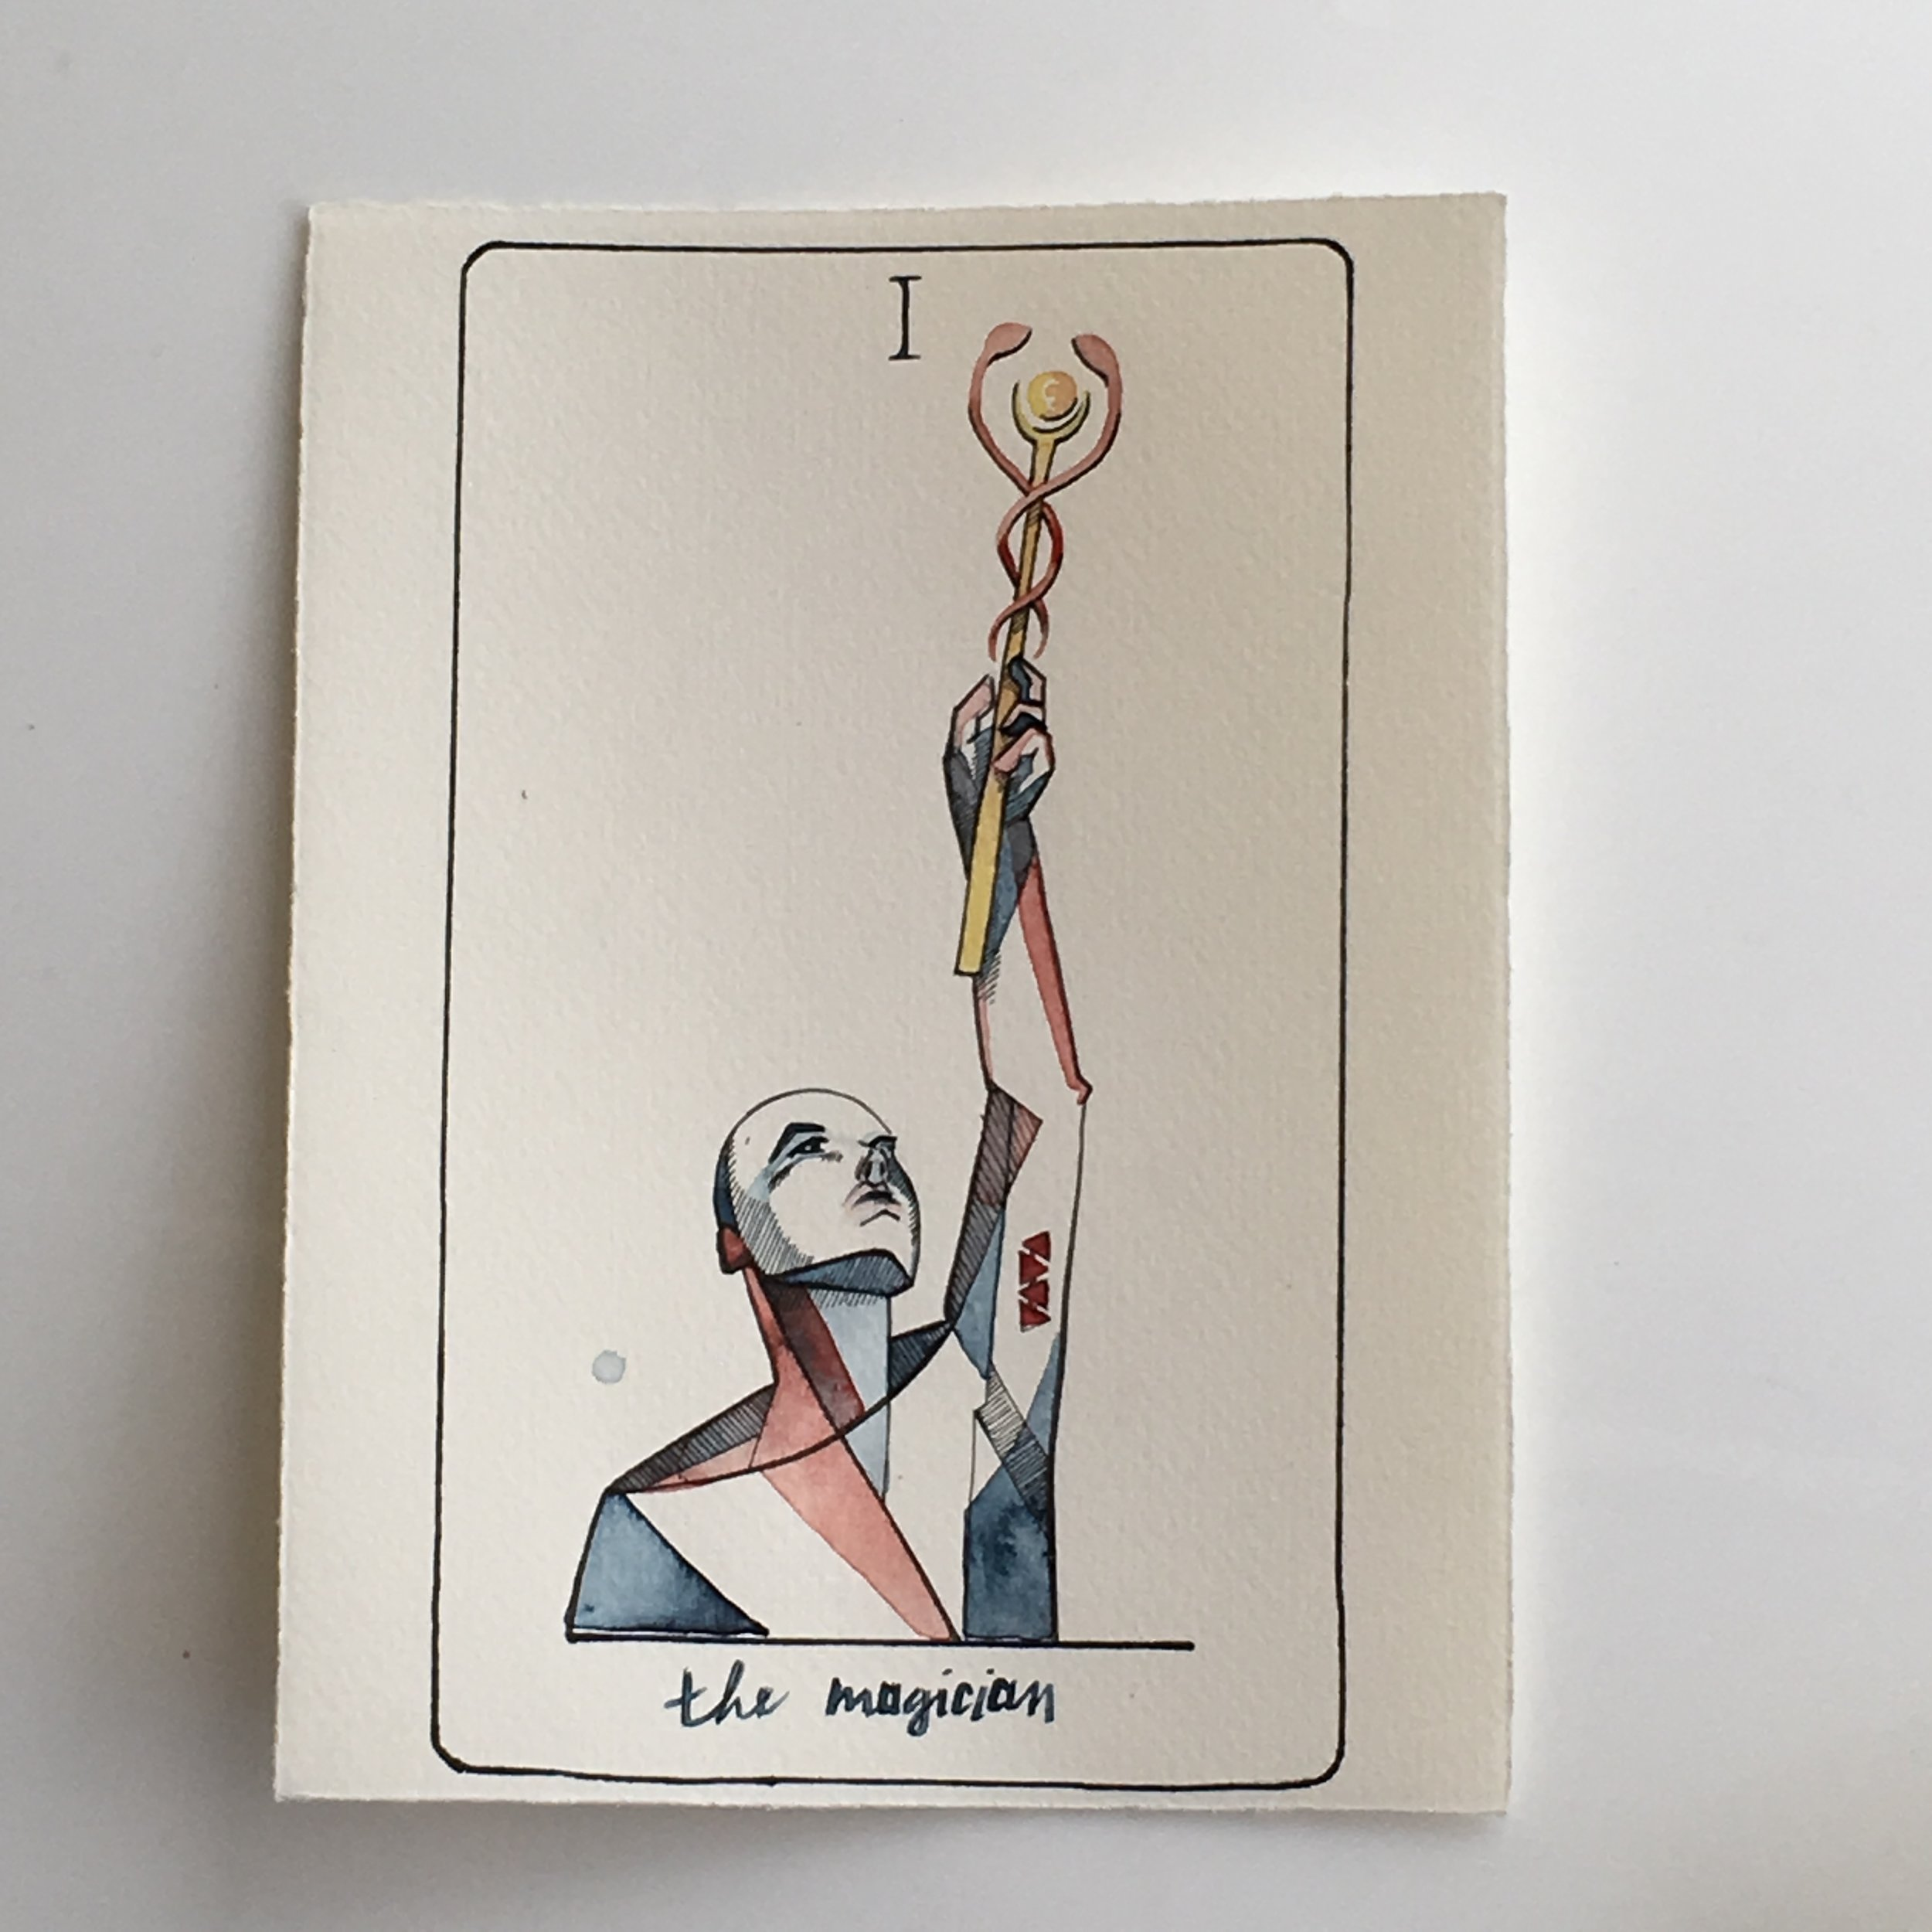 the magician, vindur tarot deck by leah pantea